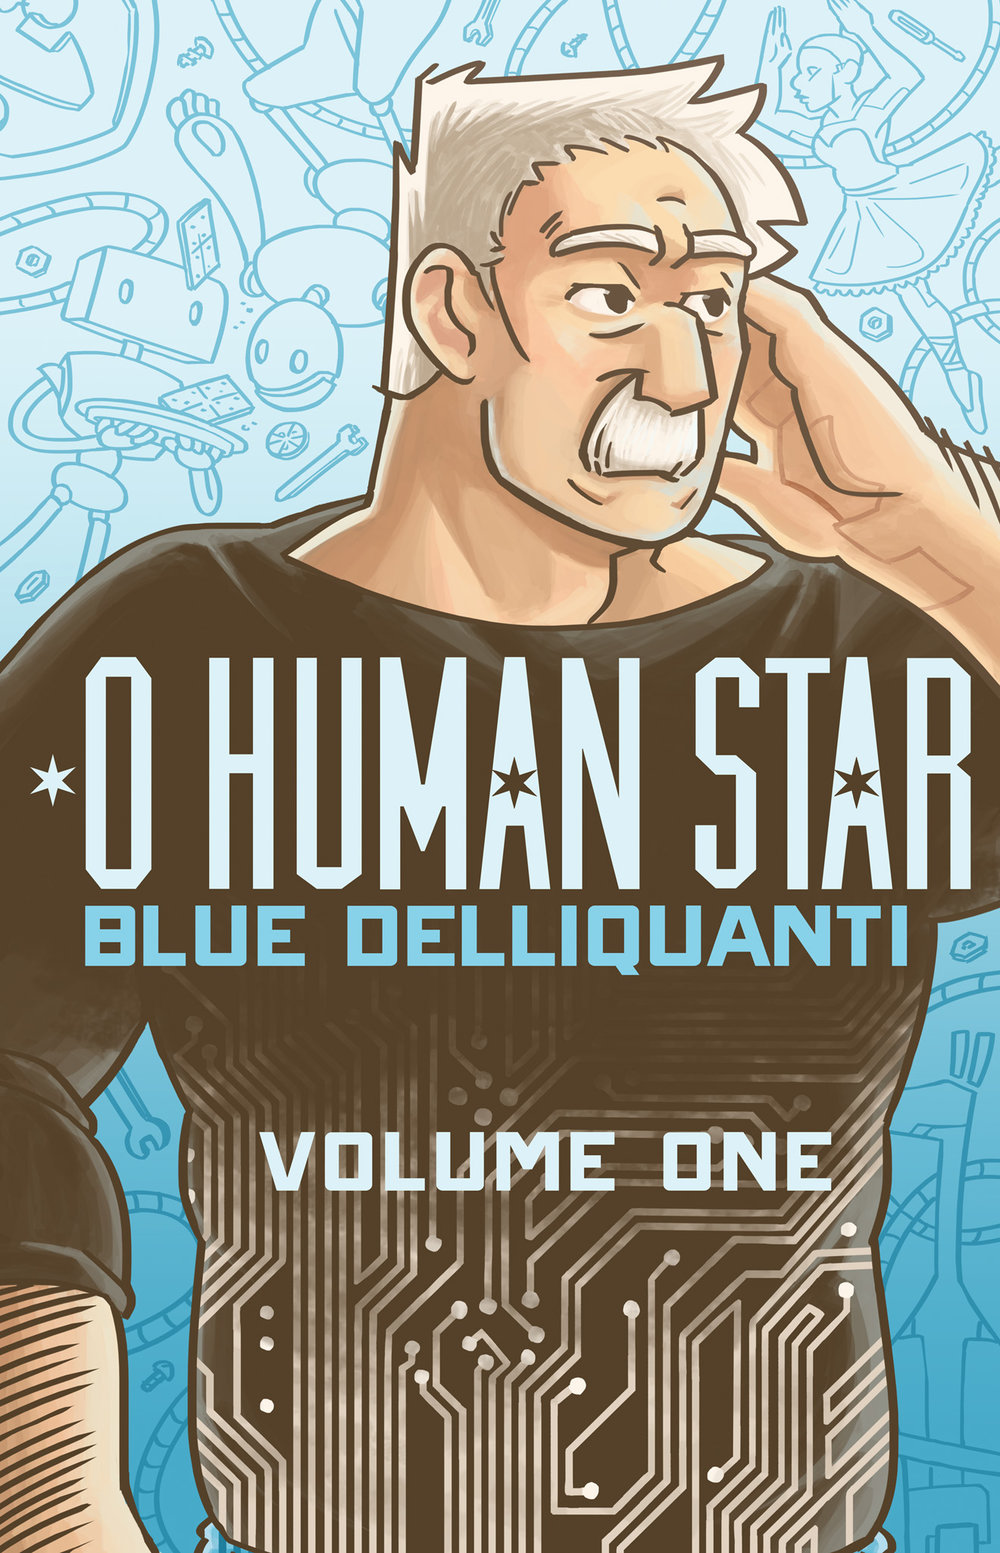 - O HUMAN STAR - Volume One(2015)Alastair Sterling was the inventor who sparked the robot revolution. And because of his sudden death, he didn't see any of it.That is, until he wakes up 16 years later in a robot body that matches his old one exactly. Until he steps outside and finds a world utterly unlike the one he left behind – a world where robots live alongside their human neighbors and coexist in their cities. A world he helped create.Now Al must track down his old partner Brendan to find out who is responsible for Al's unexpected resurrection, but their reunion raises even more questions.Like who the robot living with Brendan is. And why she looks like Al. And how much of the past should stay in the past…